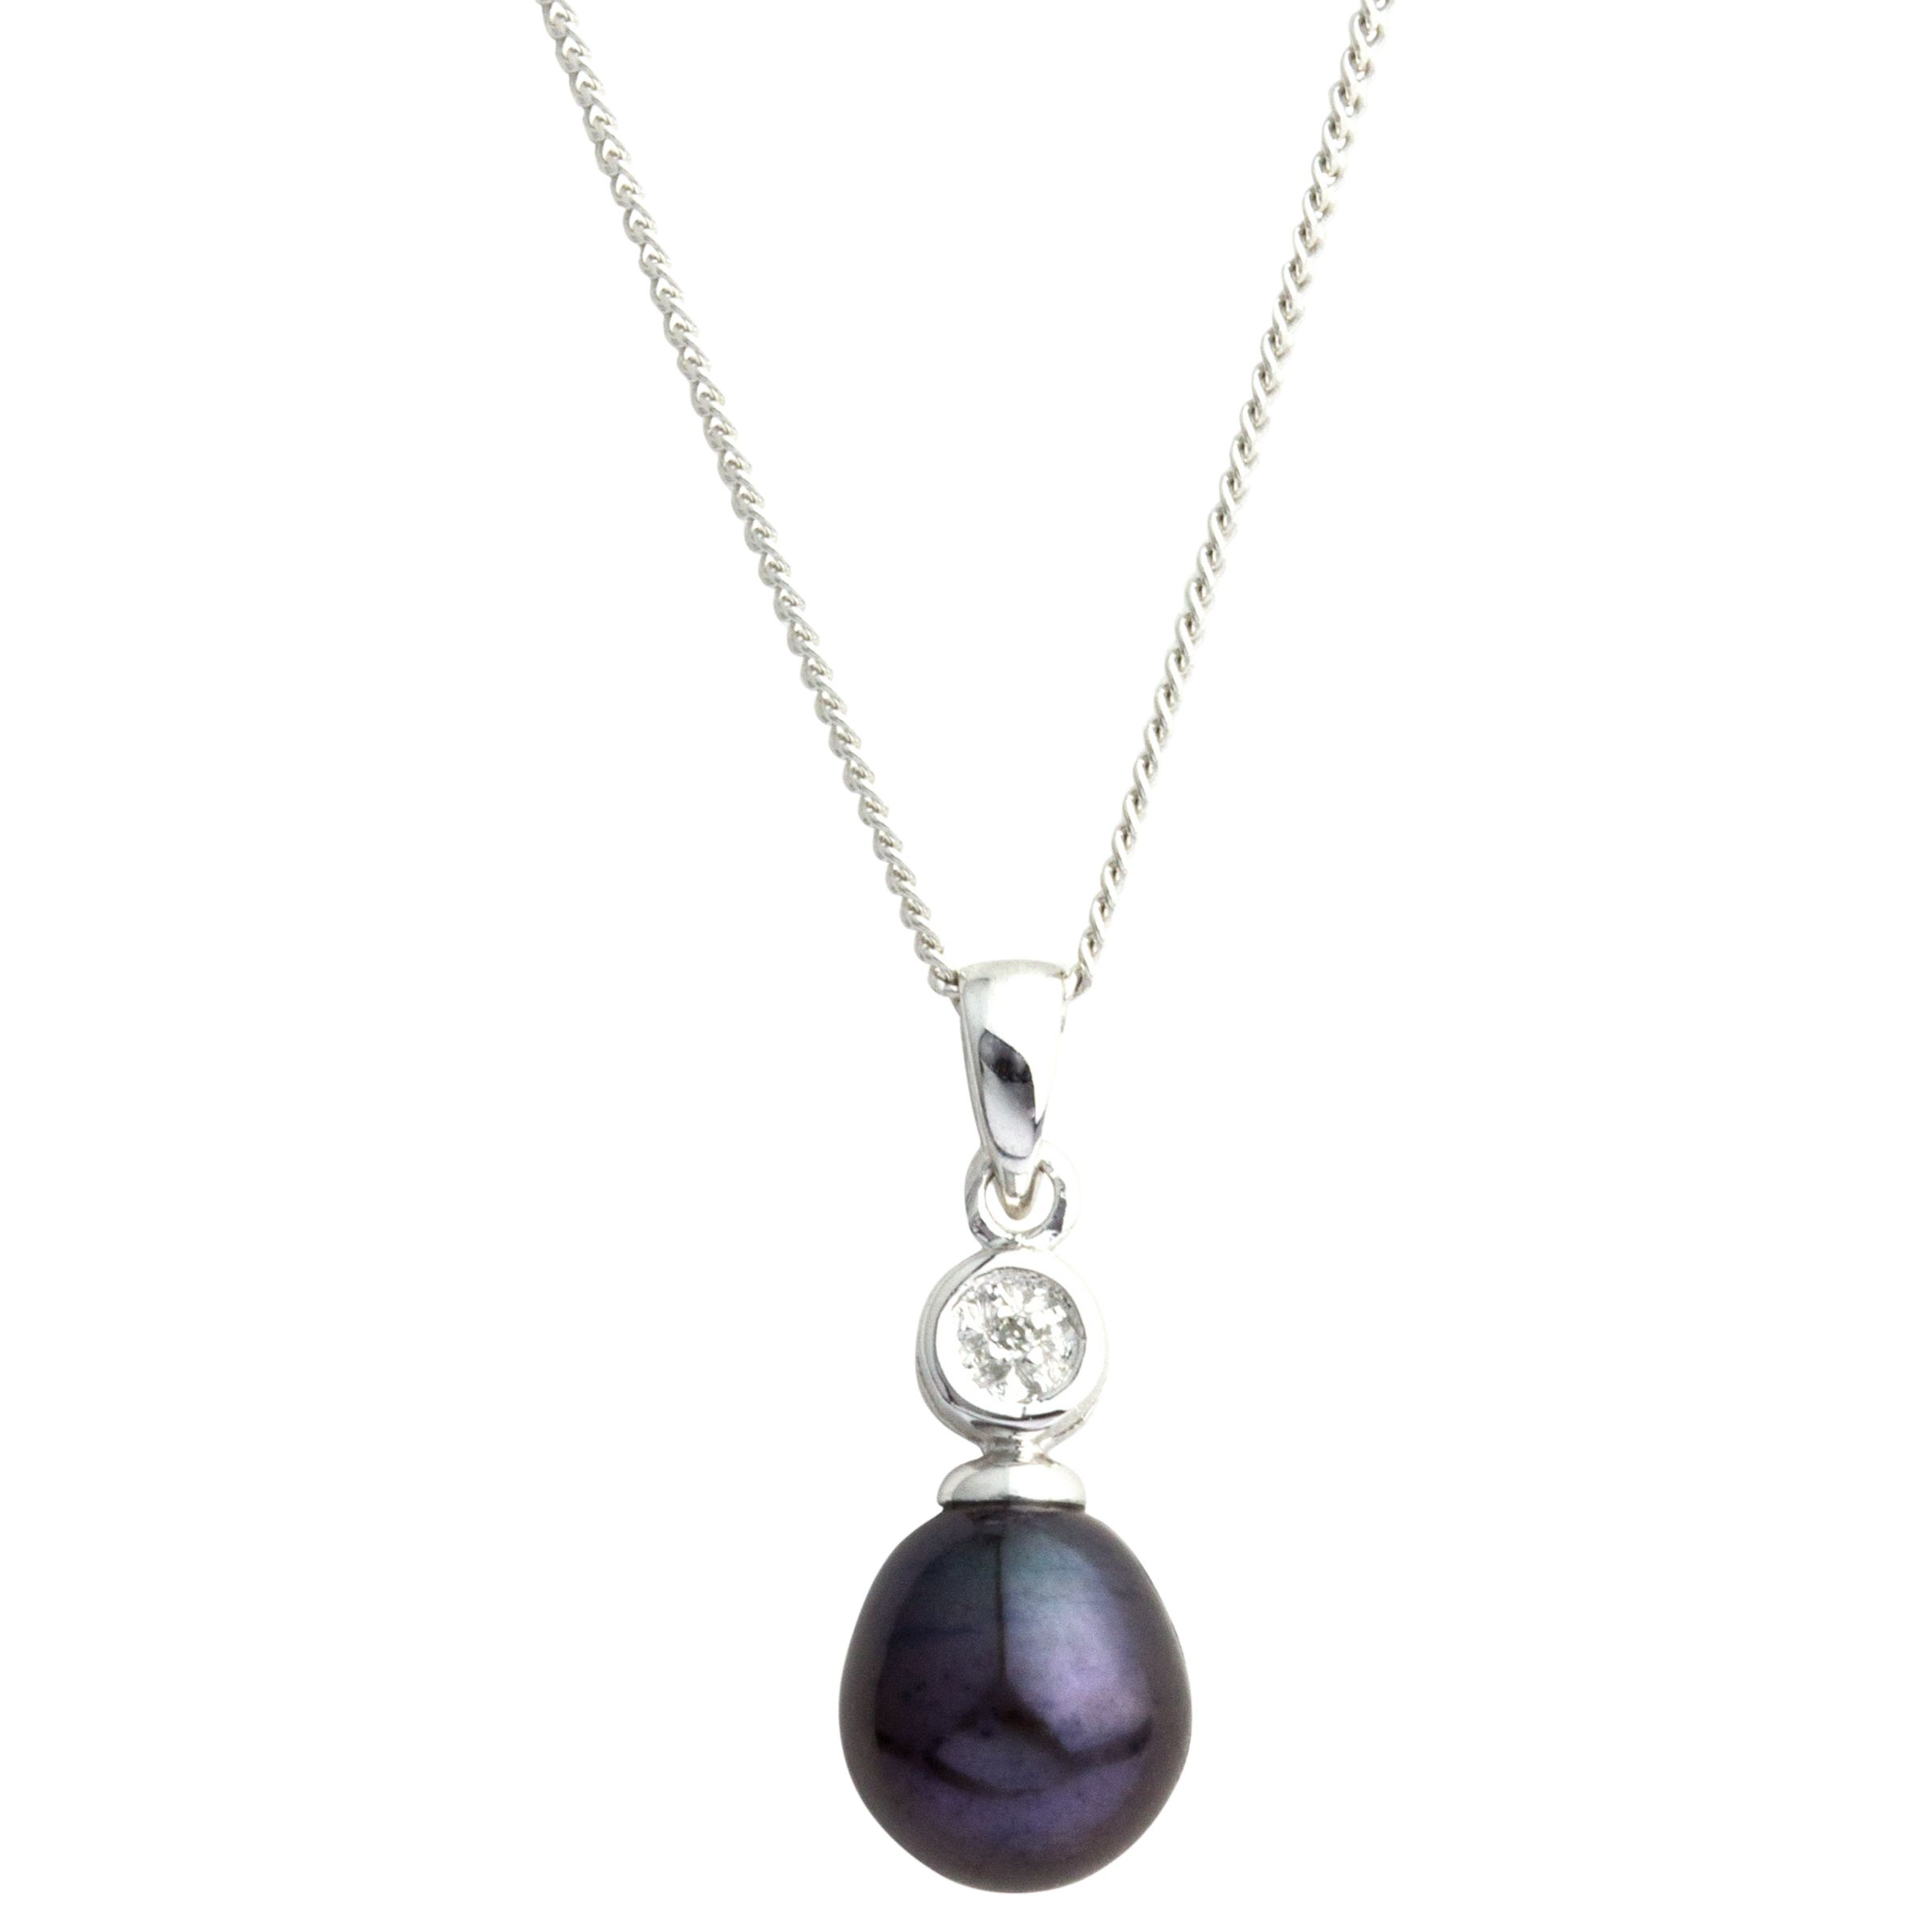 A B Davis A B Davis 9ct White Gold Diamond Pearl Pendant Necklace